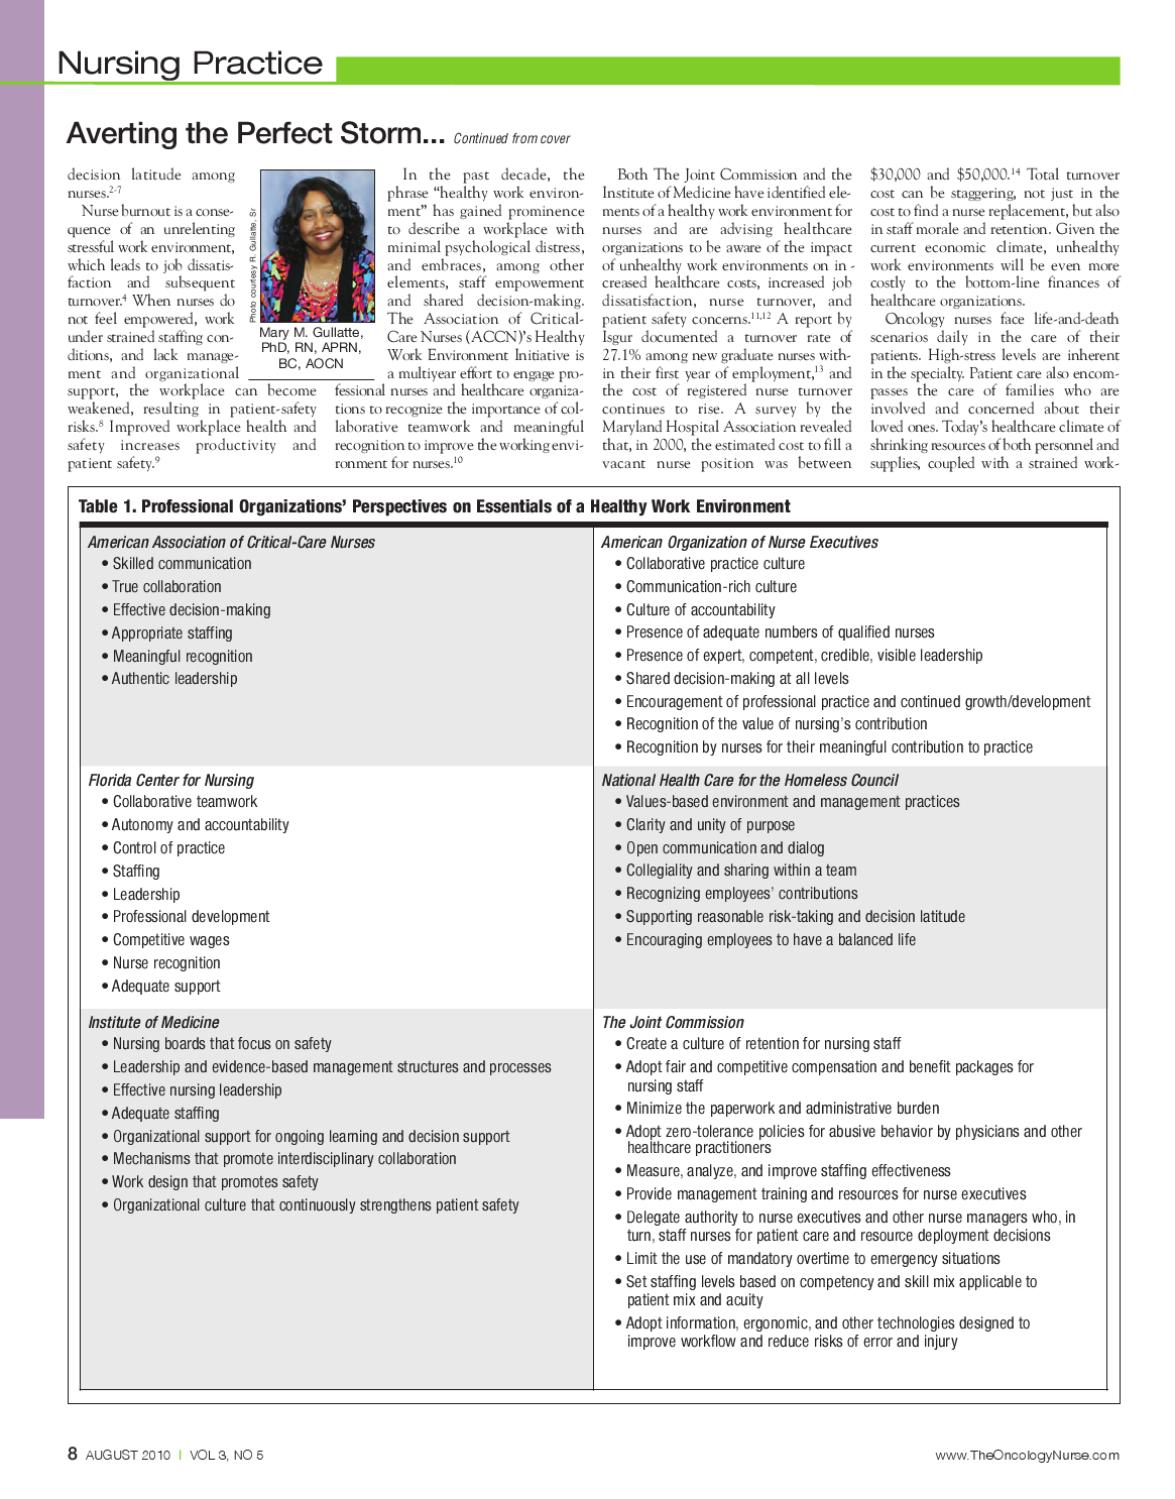 August 2010, Vol 3, No 5 by The Oncology Nurse - issuu